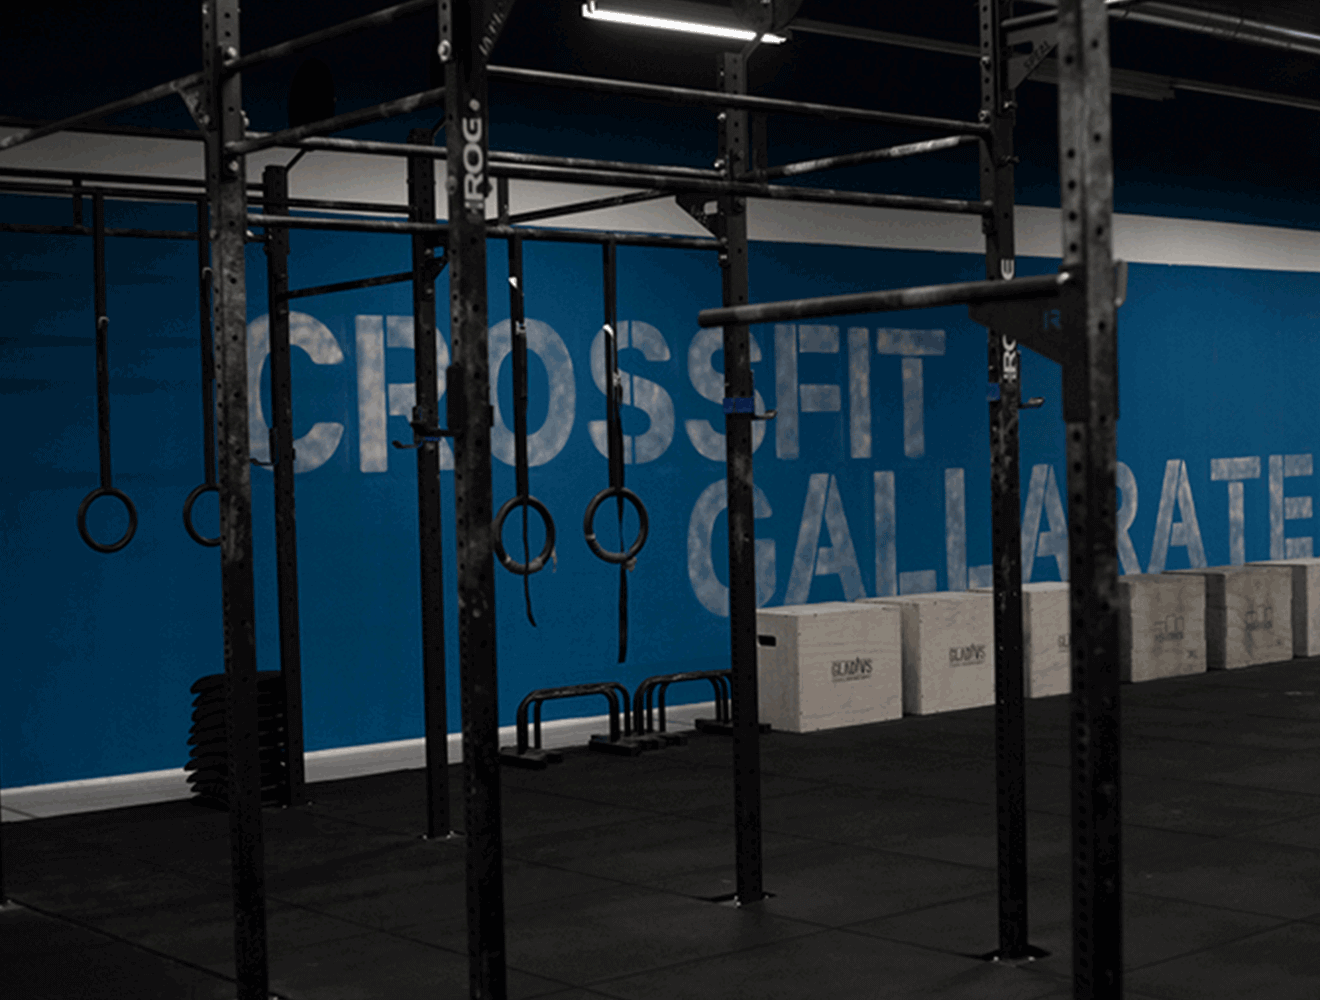 CrossfitGallarate - 05_IlBox